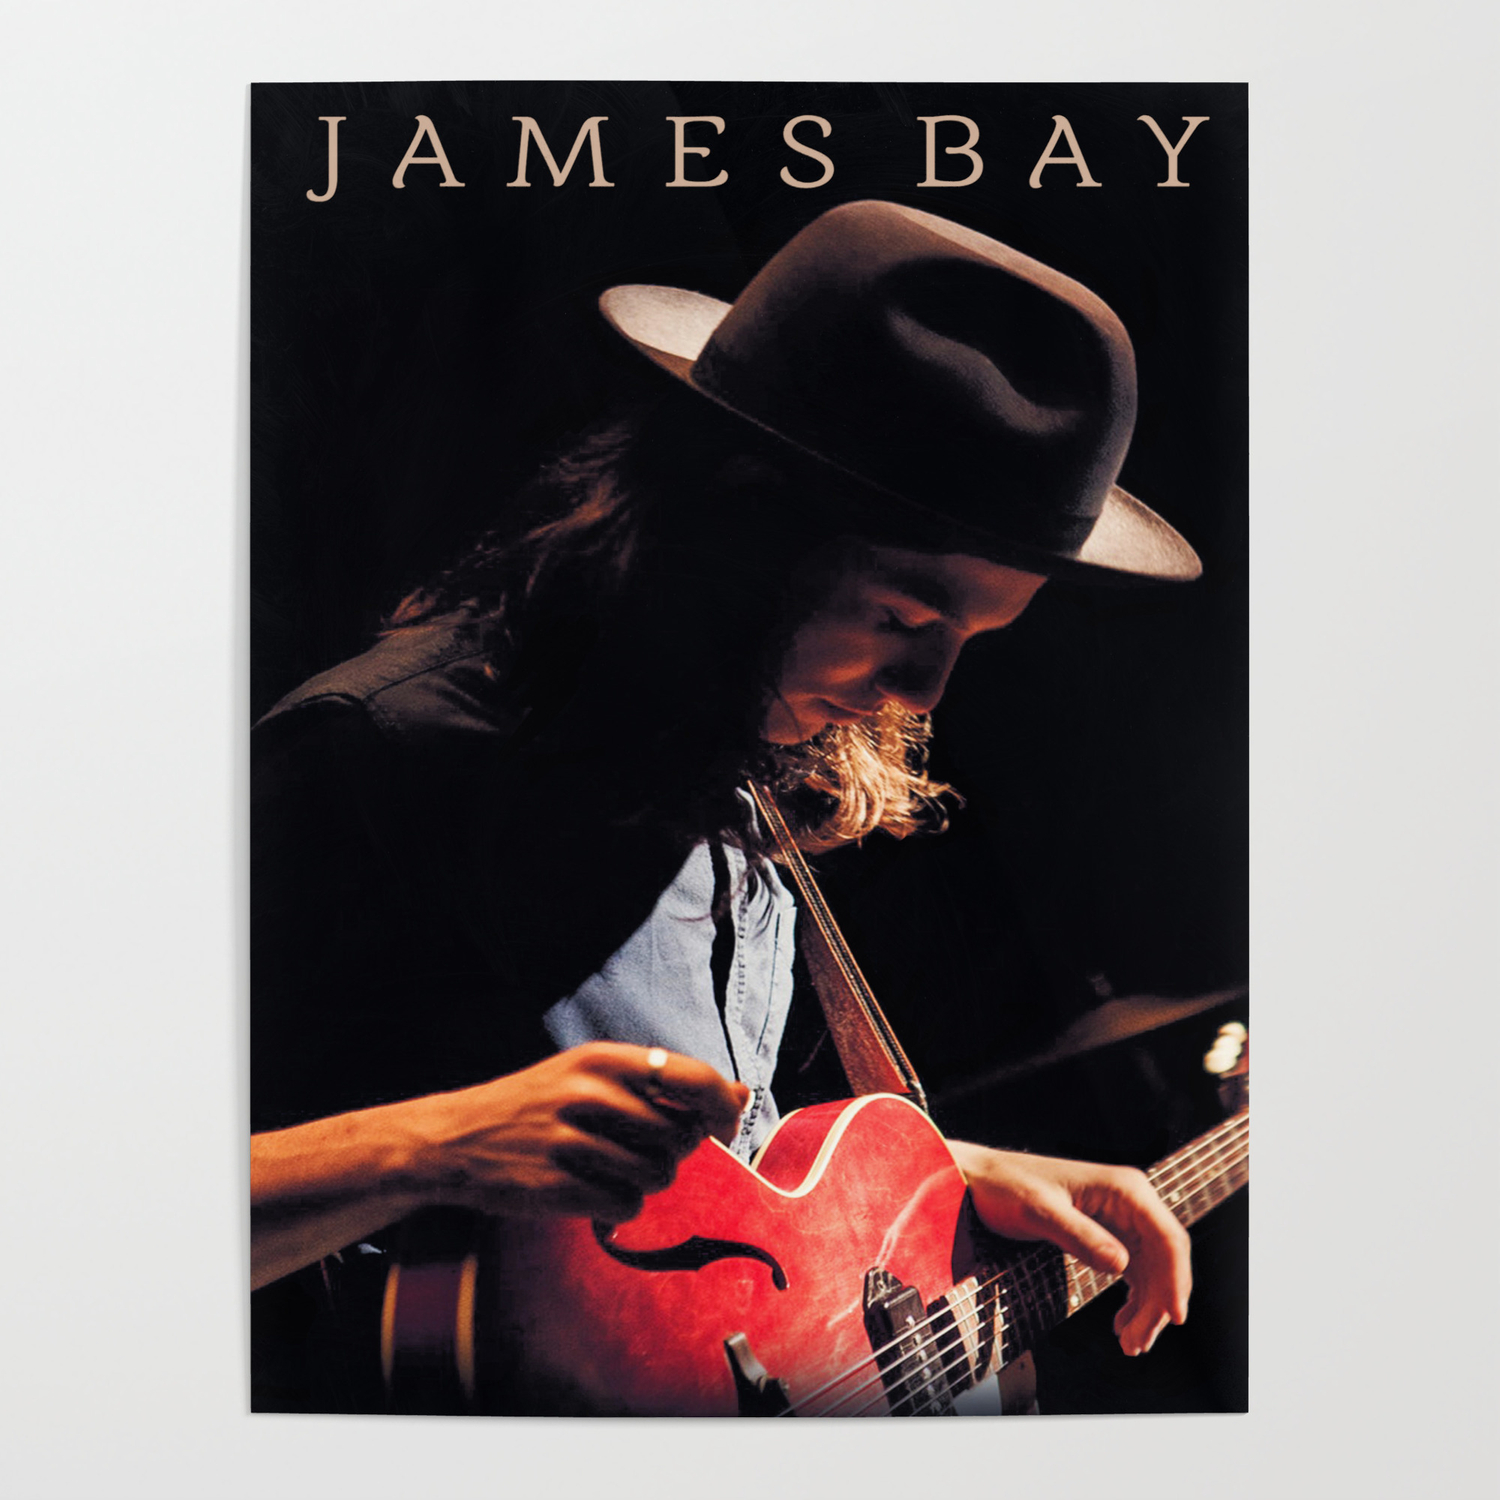 James Bay Tour 2020 james bay live tour 2019 2020 ongcuwik Poster by oppo391 | Society6